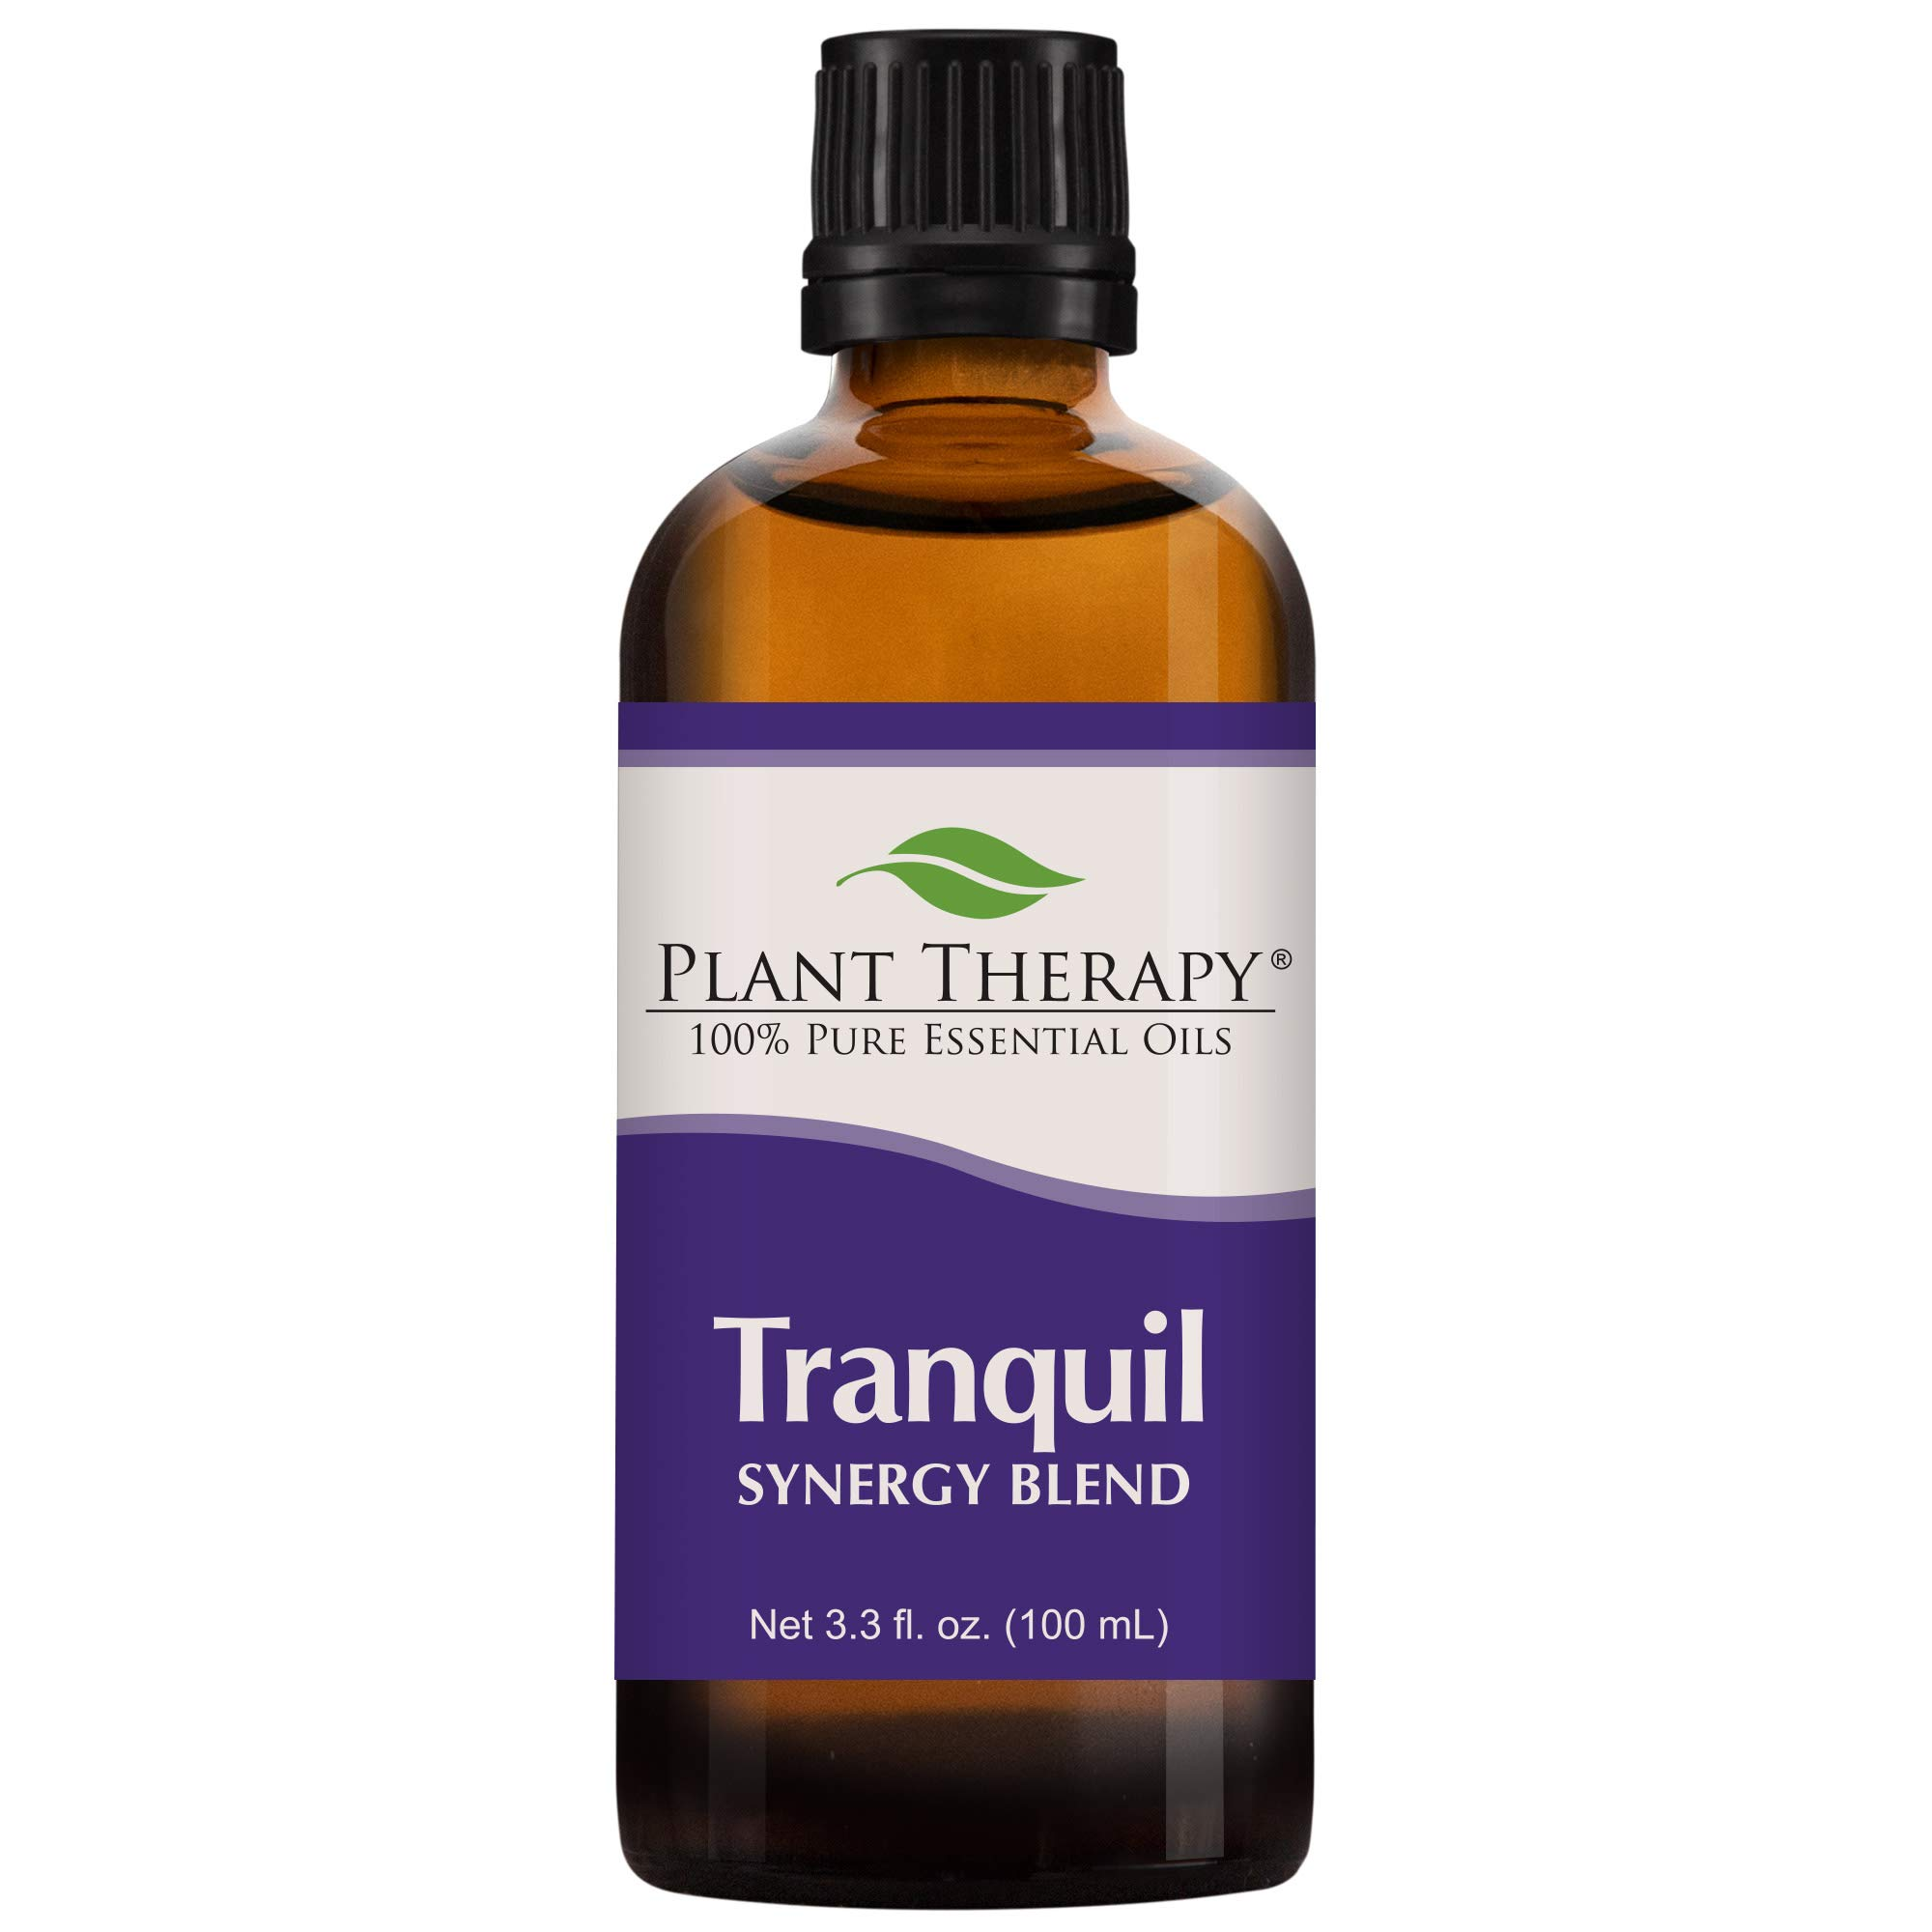 Plant Therapy Essential Oil | Tranquil Synergy Blend | Stress Relief, Sleep, Peace & Calming Blend | 100% Pure, Undiluted, Natural Aromatherapy, Therapeutic Grade | 100 milliliter (3.3 ounce)